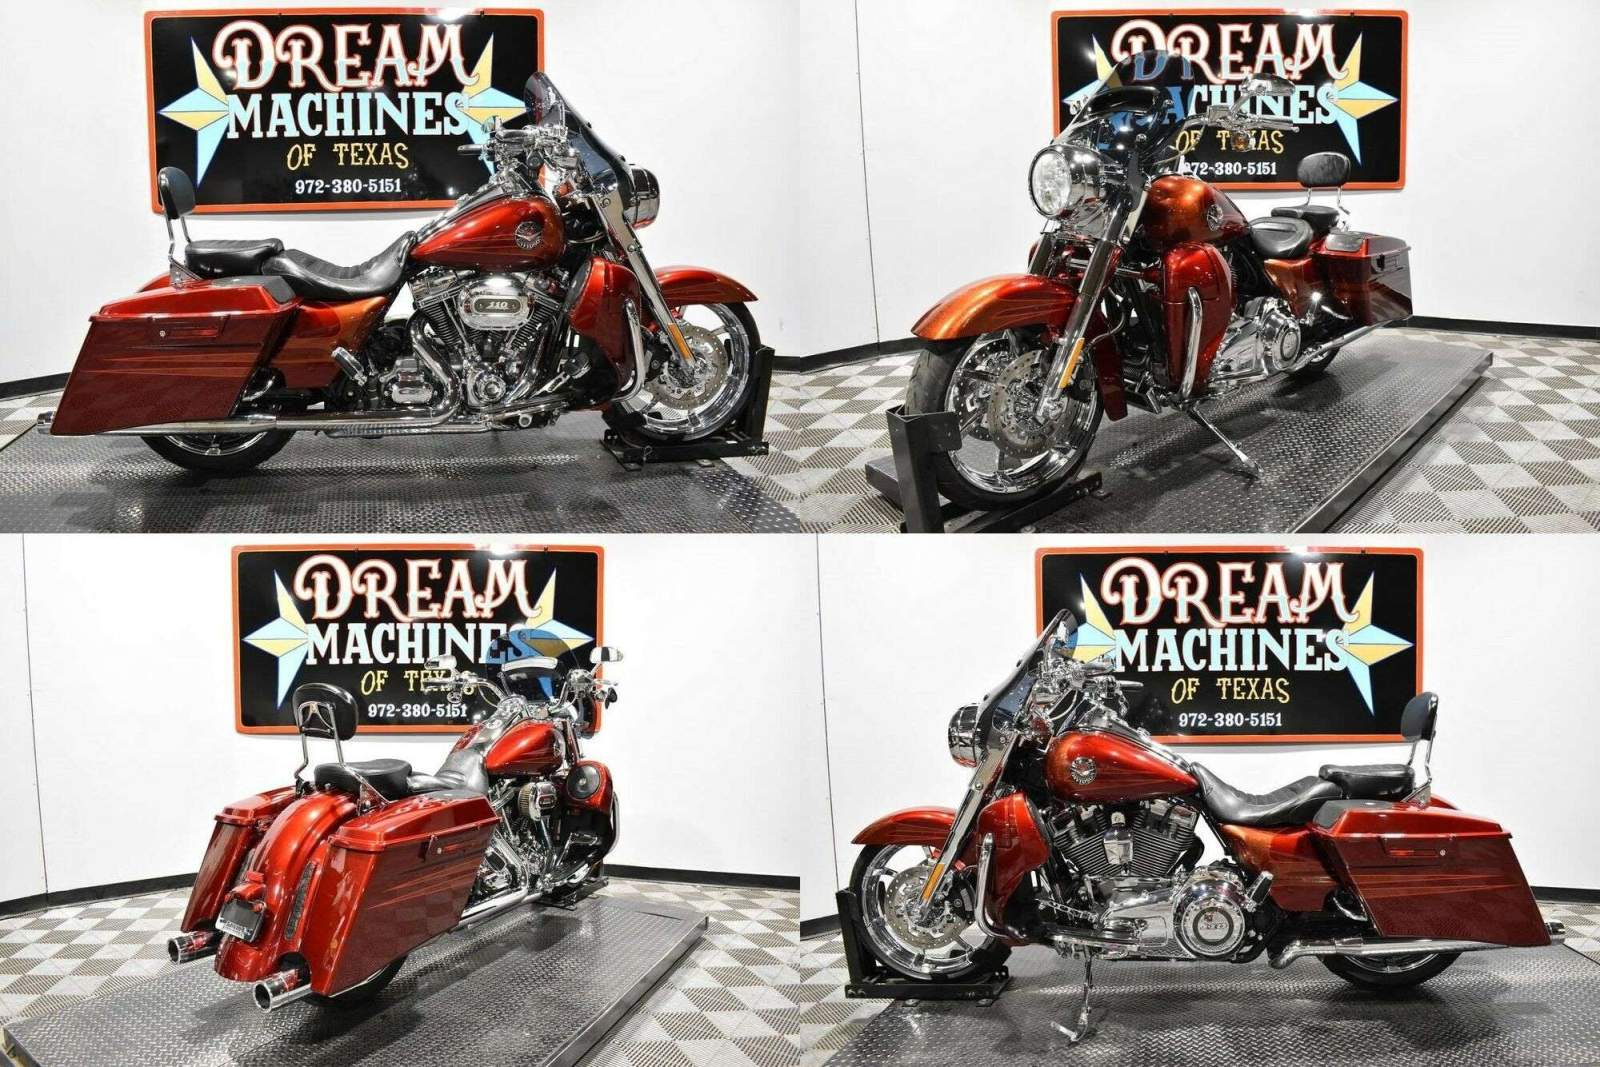 2013 Harley-Davidson FLHRSE5 - Screamin Eagle Road King CVO Burgundy used for sale near me